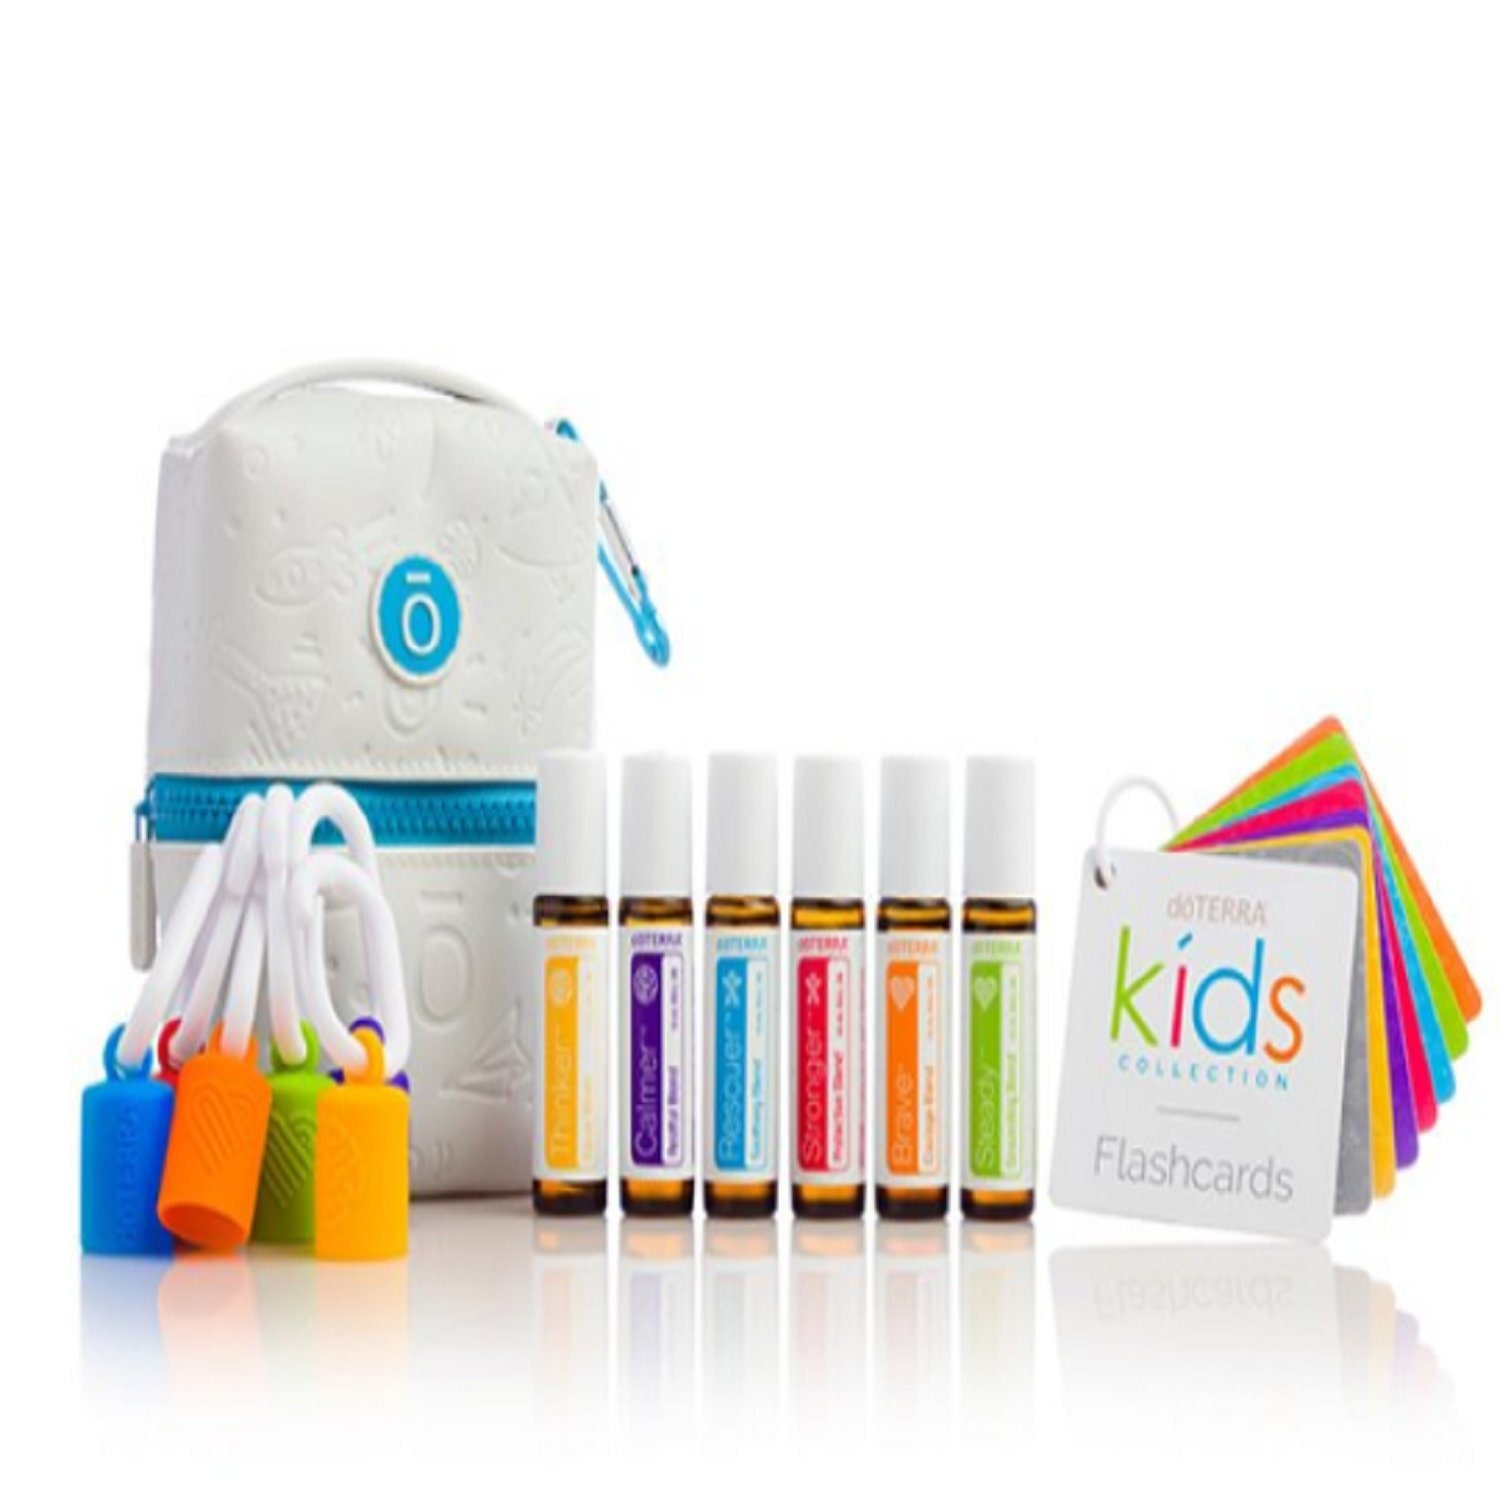 Doterra Kids Oil Collectionnew On Etsy